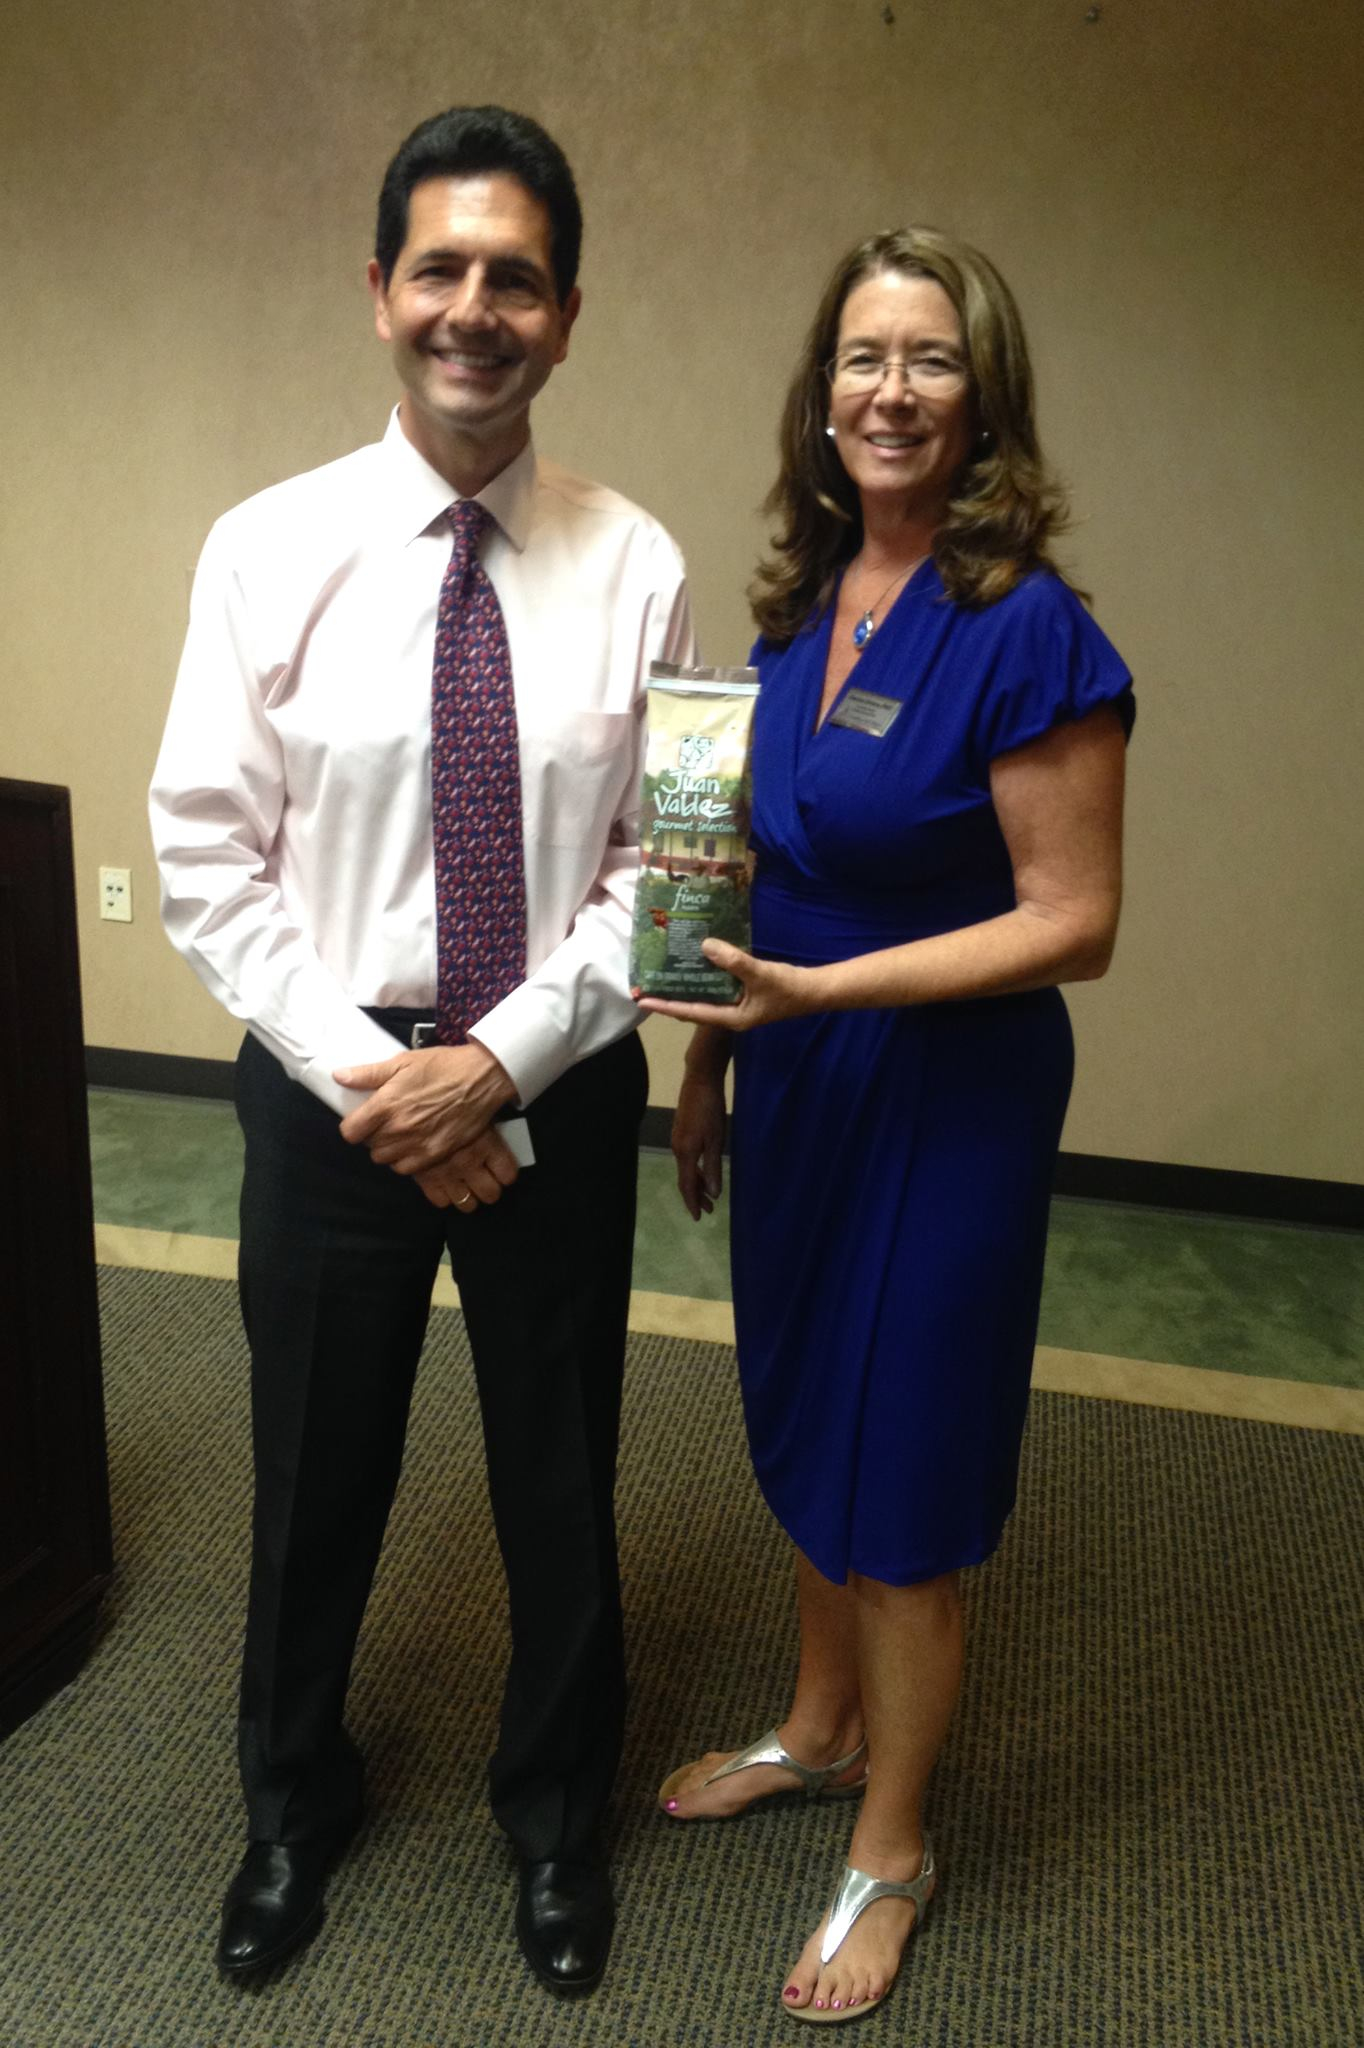 Denise Dimon, Director of Ahlers Center for International Business with Mr. Hernán Mendez